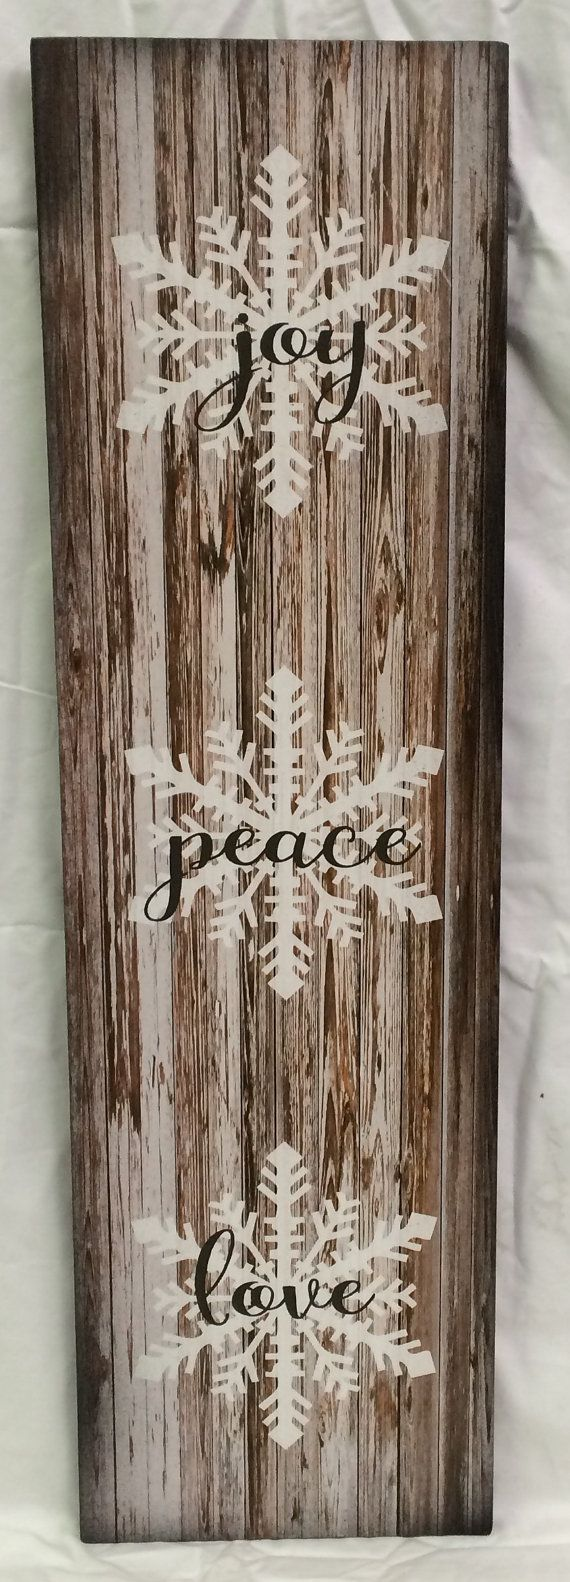 A simple but elegant rustic style sign.  The design is available as a wood sign or canvas wall hanging. Sawtooth hanger is attached for proper wall placement.  Copyrights 2015 HeartlandSigns